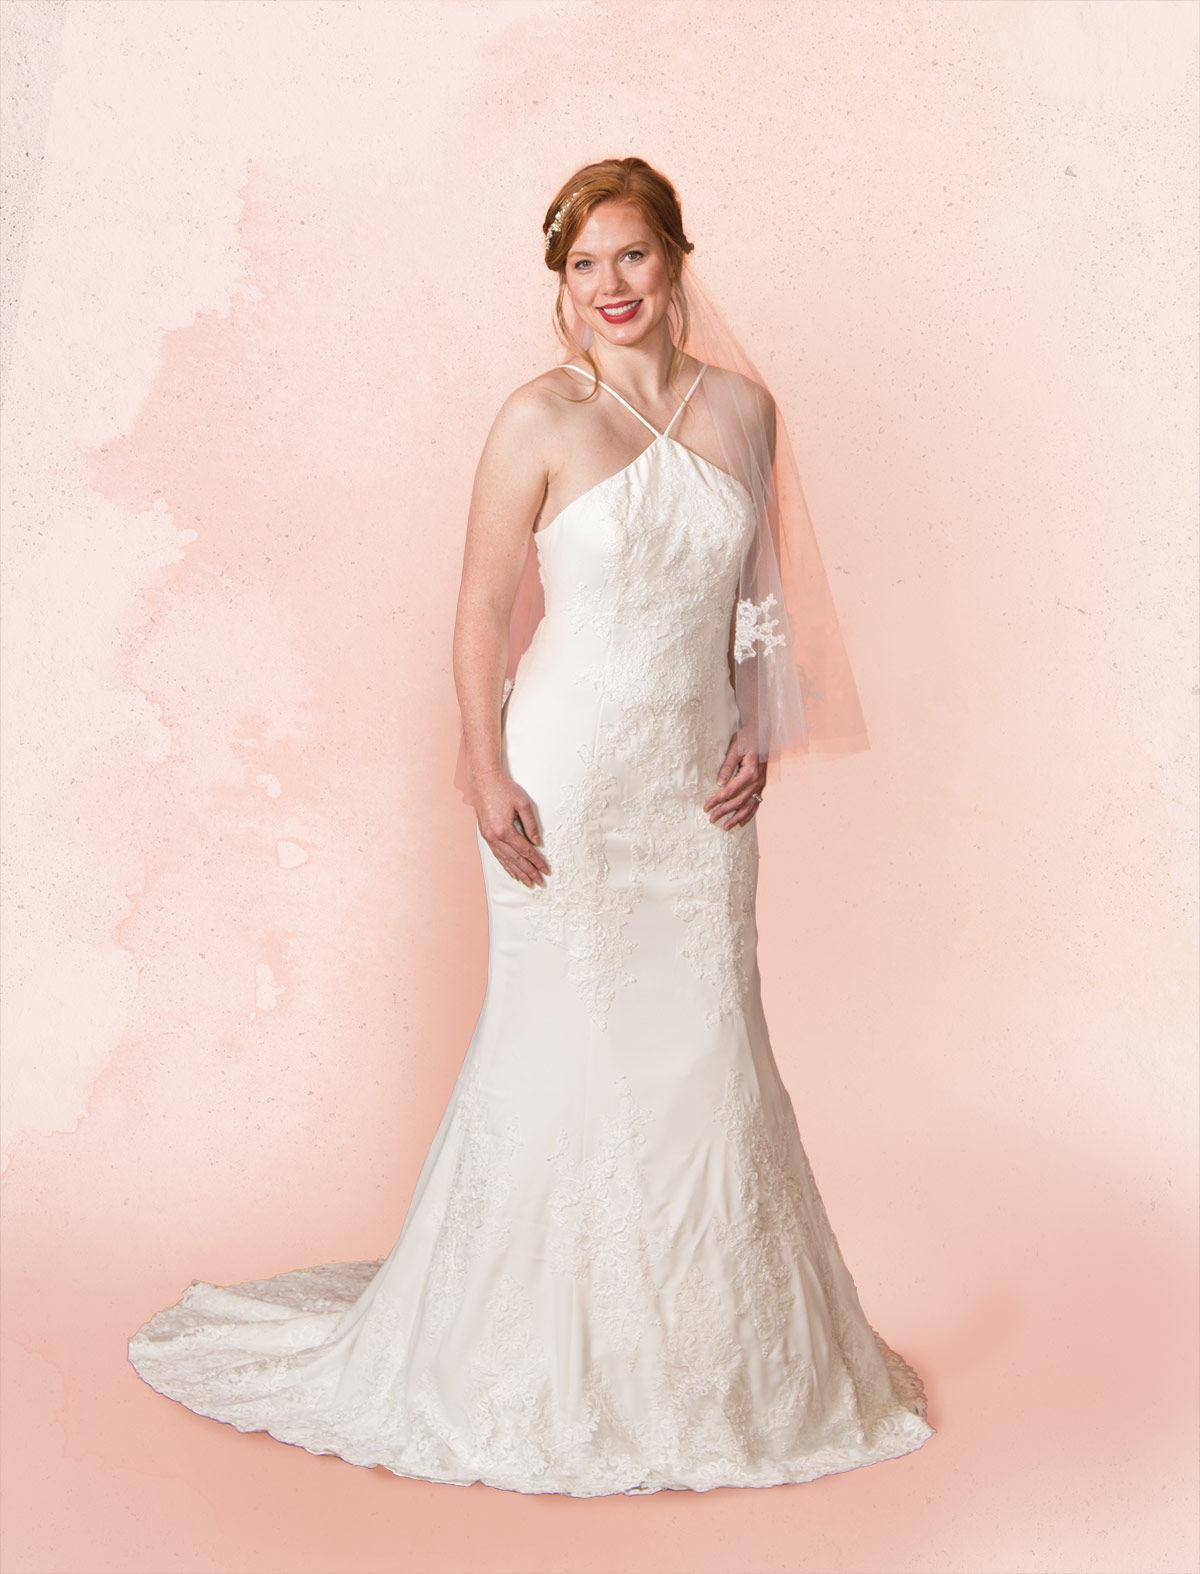 Gowns -- glorious gowns!  757e3c29e3f3